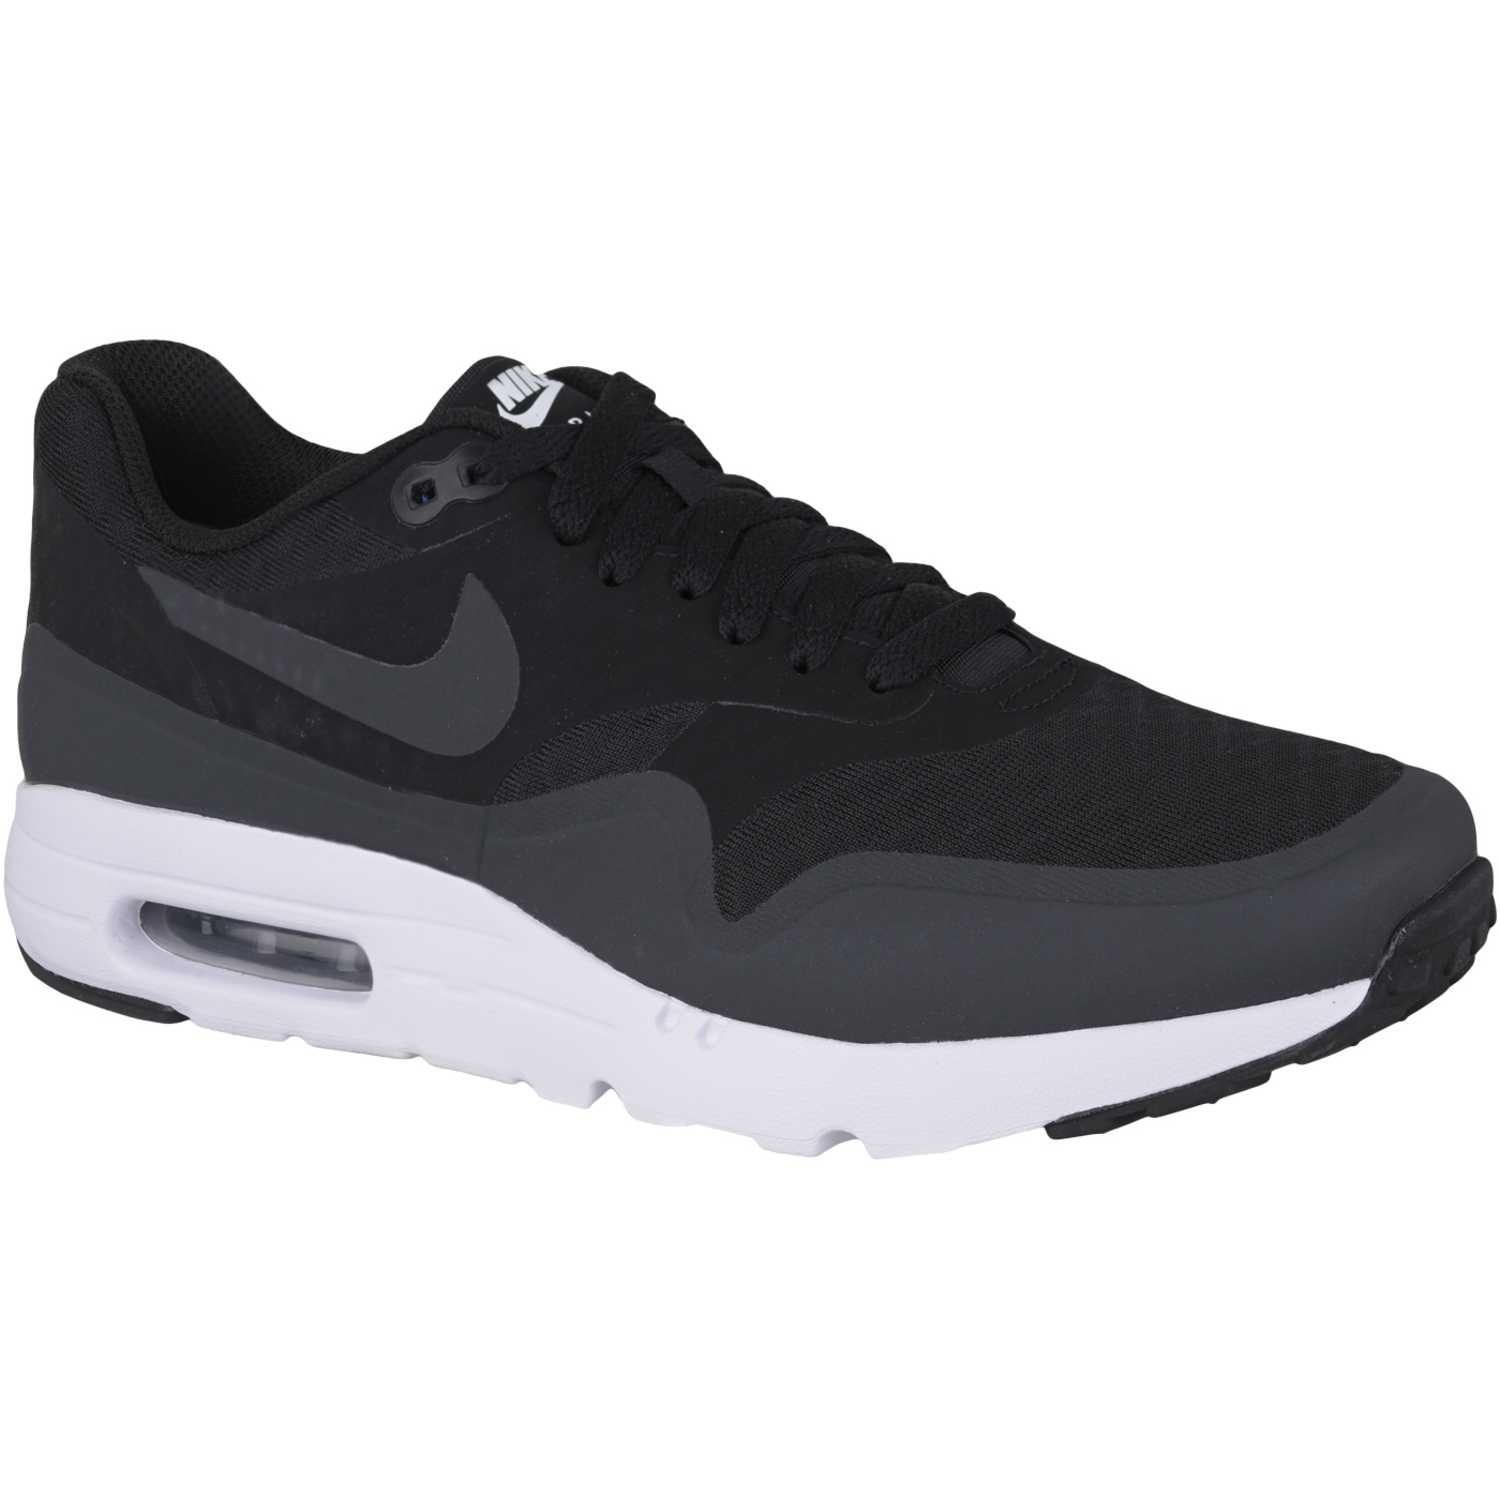 timeless design 55fda 721a7 Zapatilla de Hombre Nike gris   negro air max 1 ultra essential